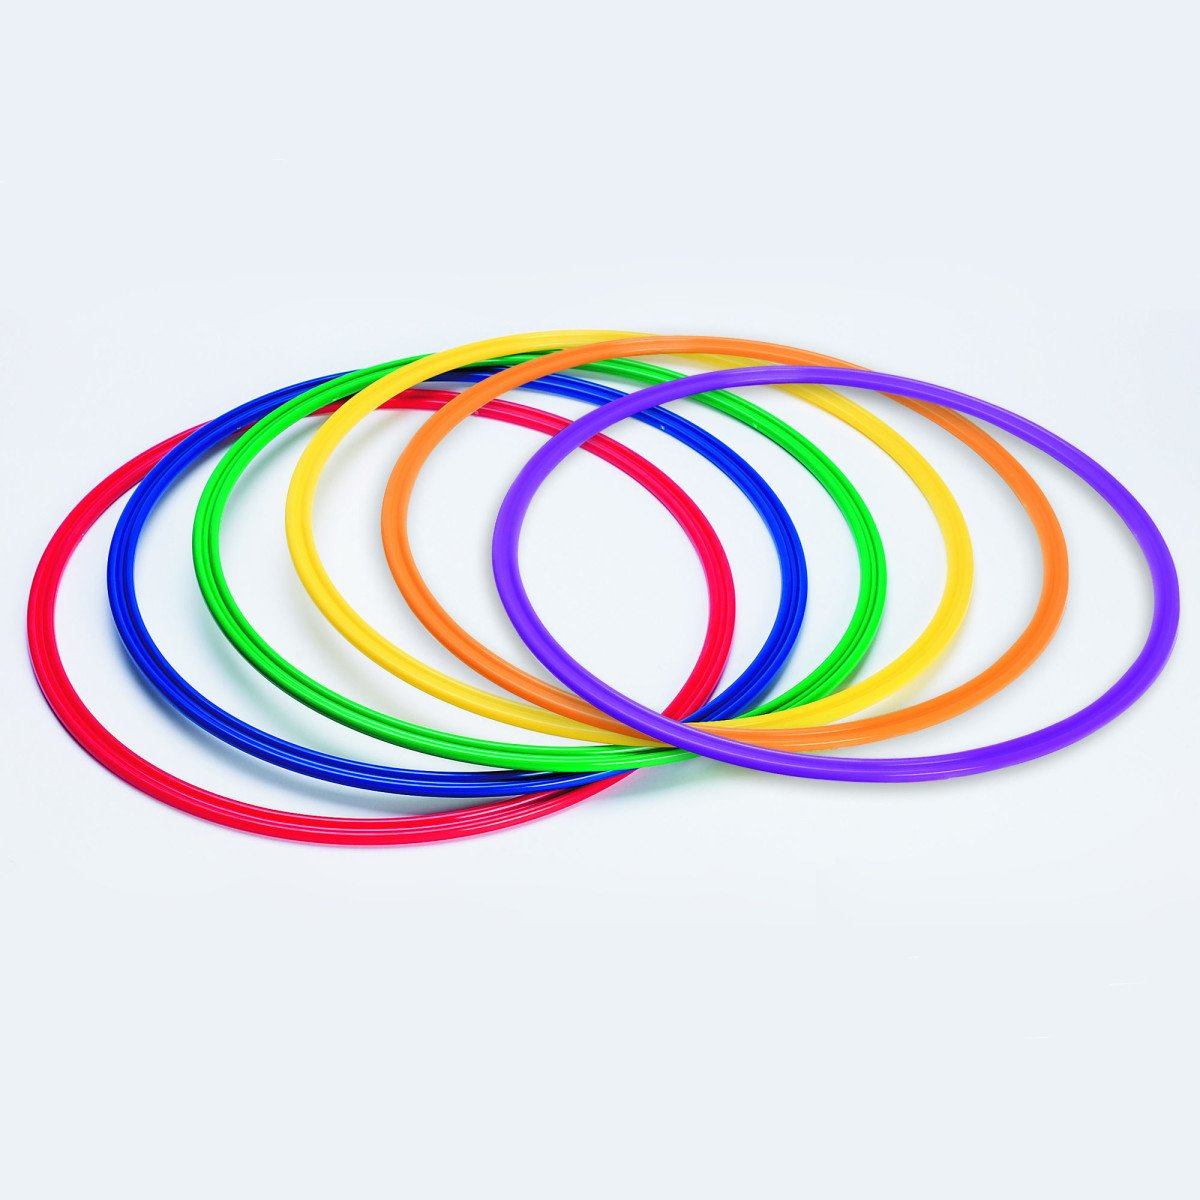 S&S Worldwide PA901-6C Spectrum Flat Hoops/Agility Rings, 36'' (Pack of 6)